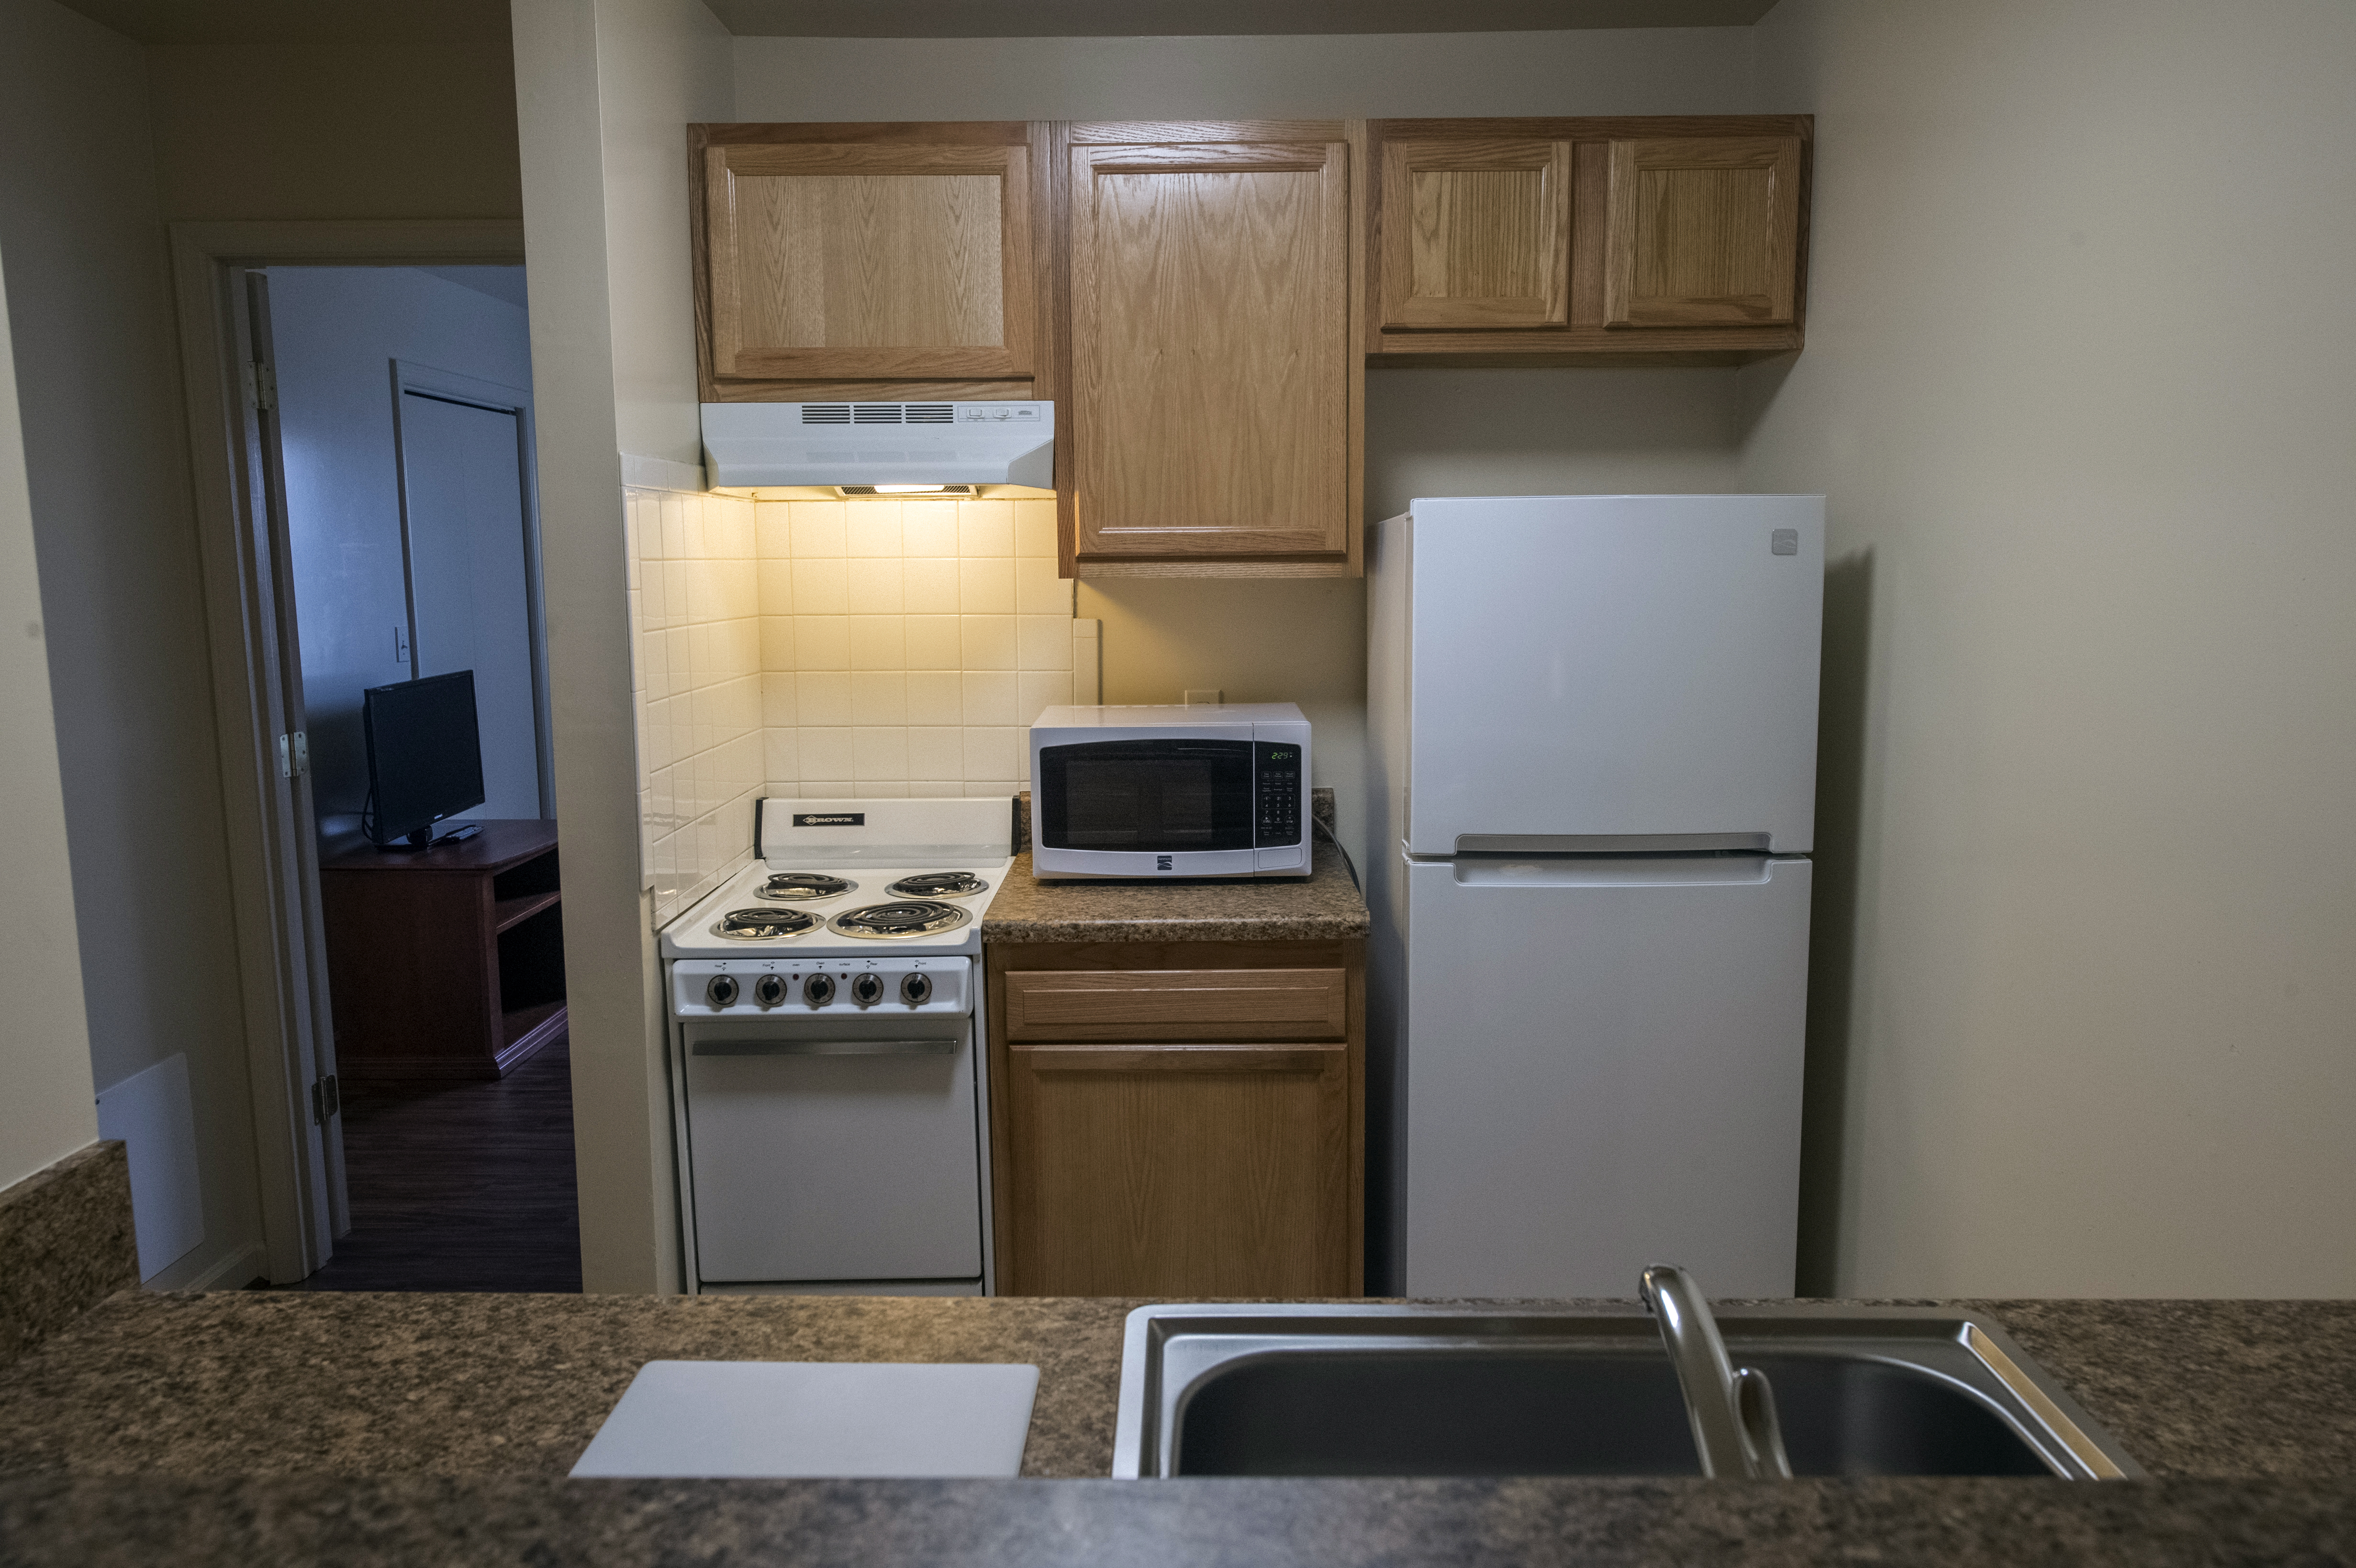 christiansburg va corporate suites extended stay hotel